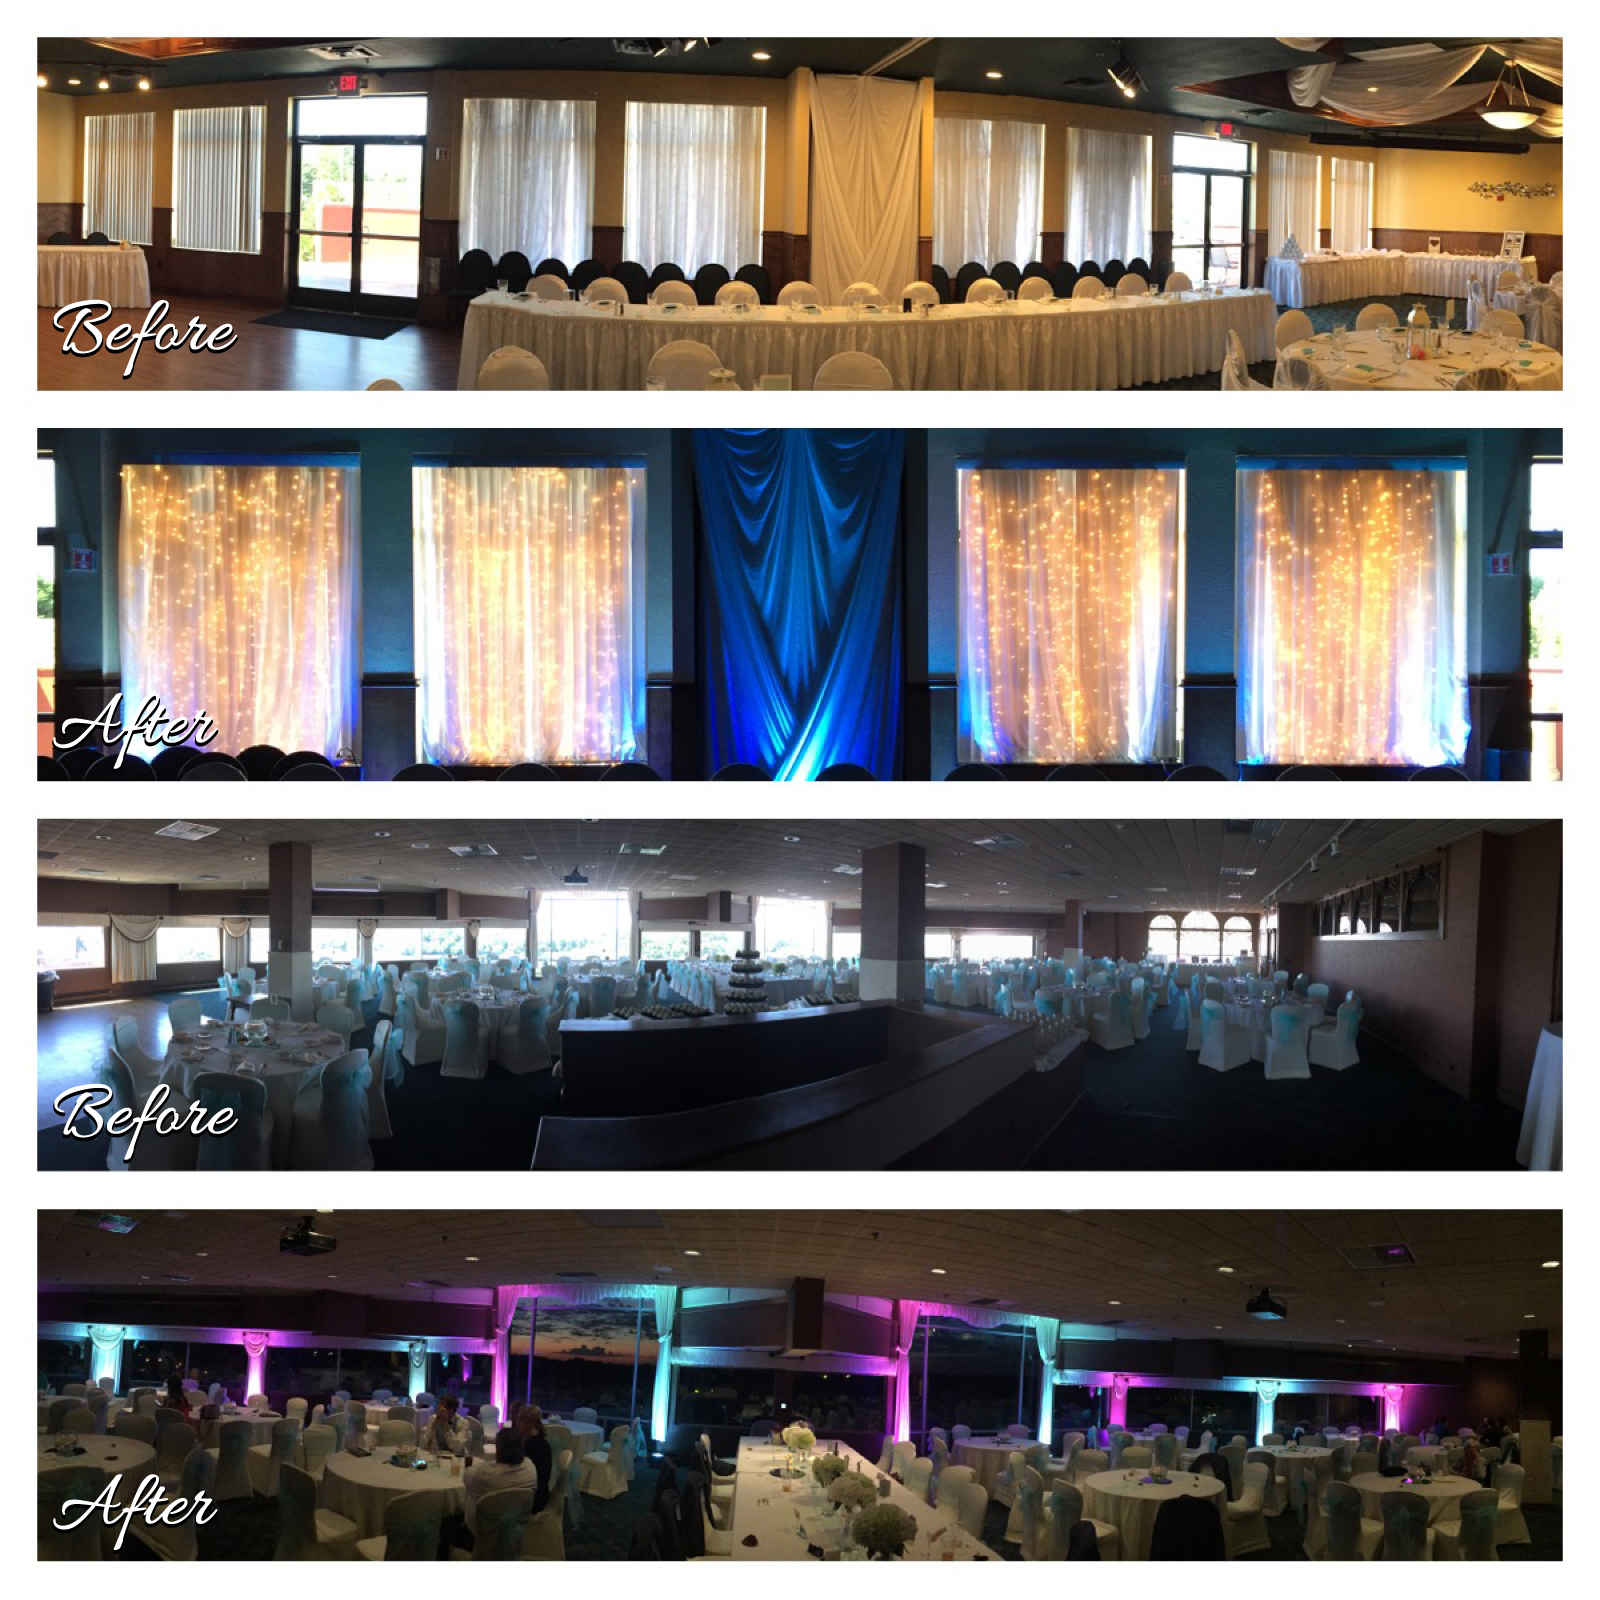 Before and After, Wedding Uplighting Images